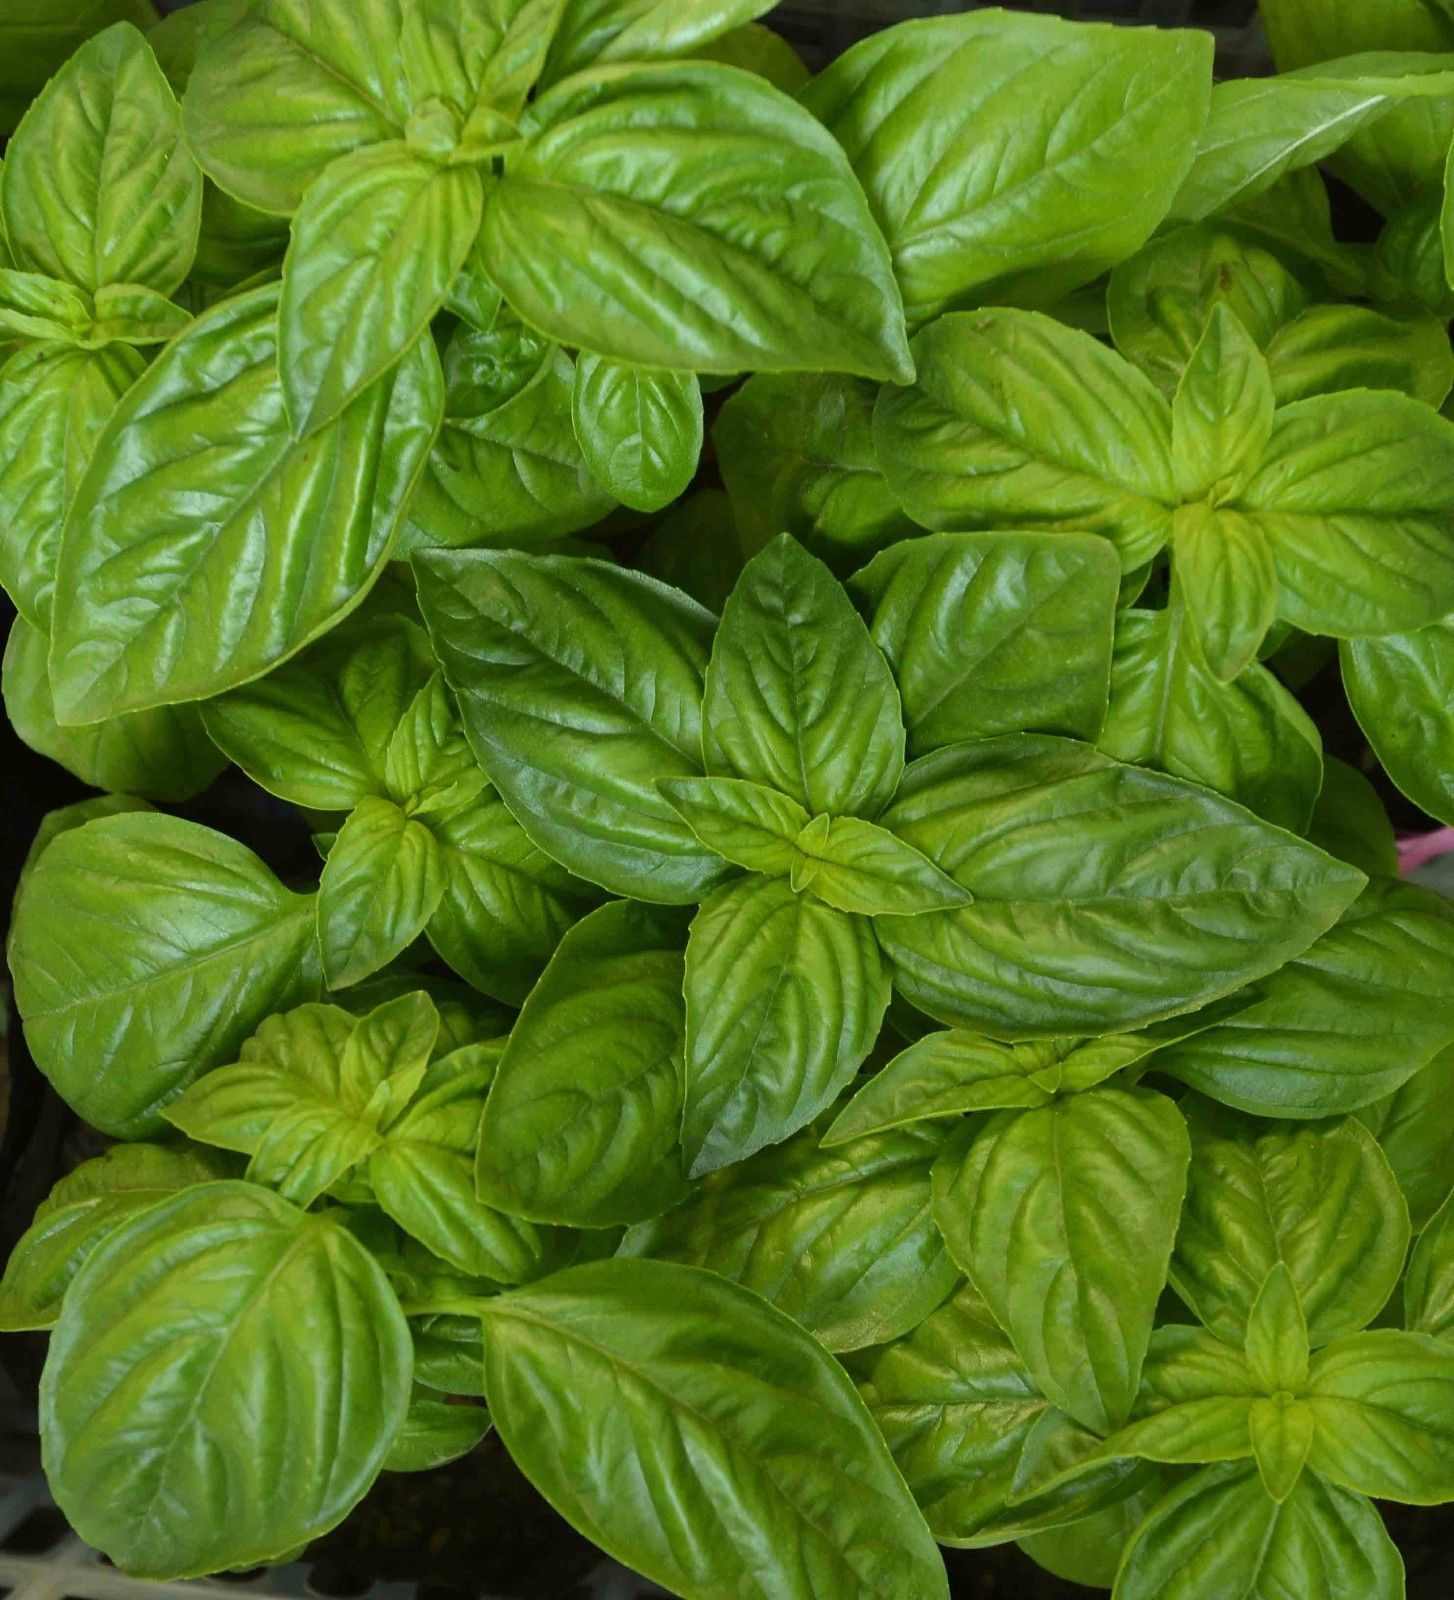 Primary image for 400 seeds Genovese Basil Herb, NON-GMO, Heirloom